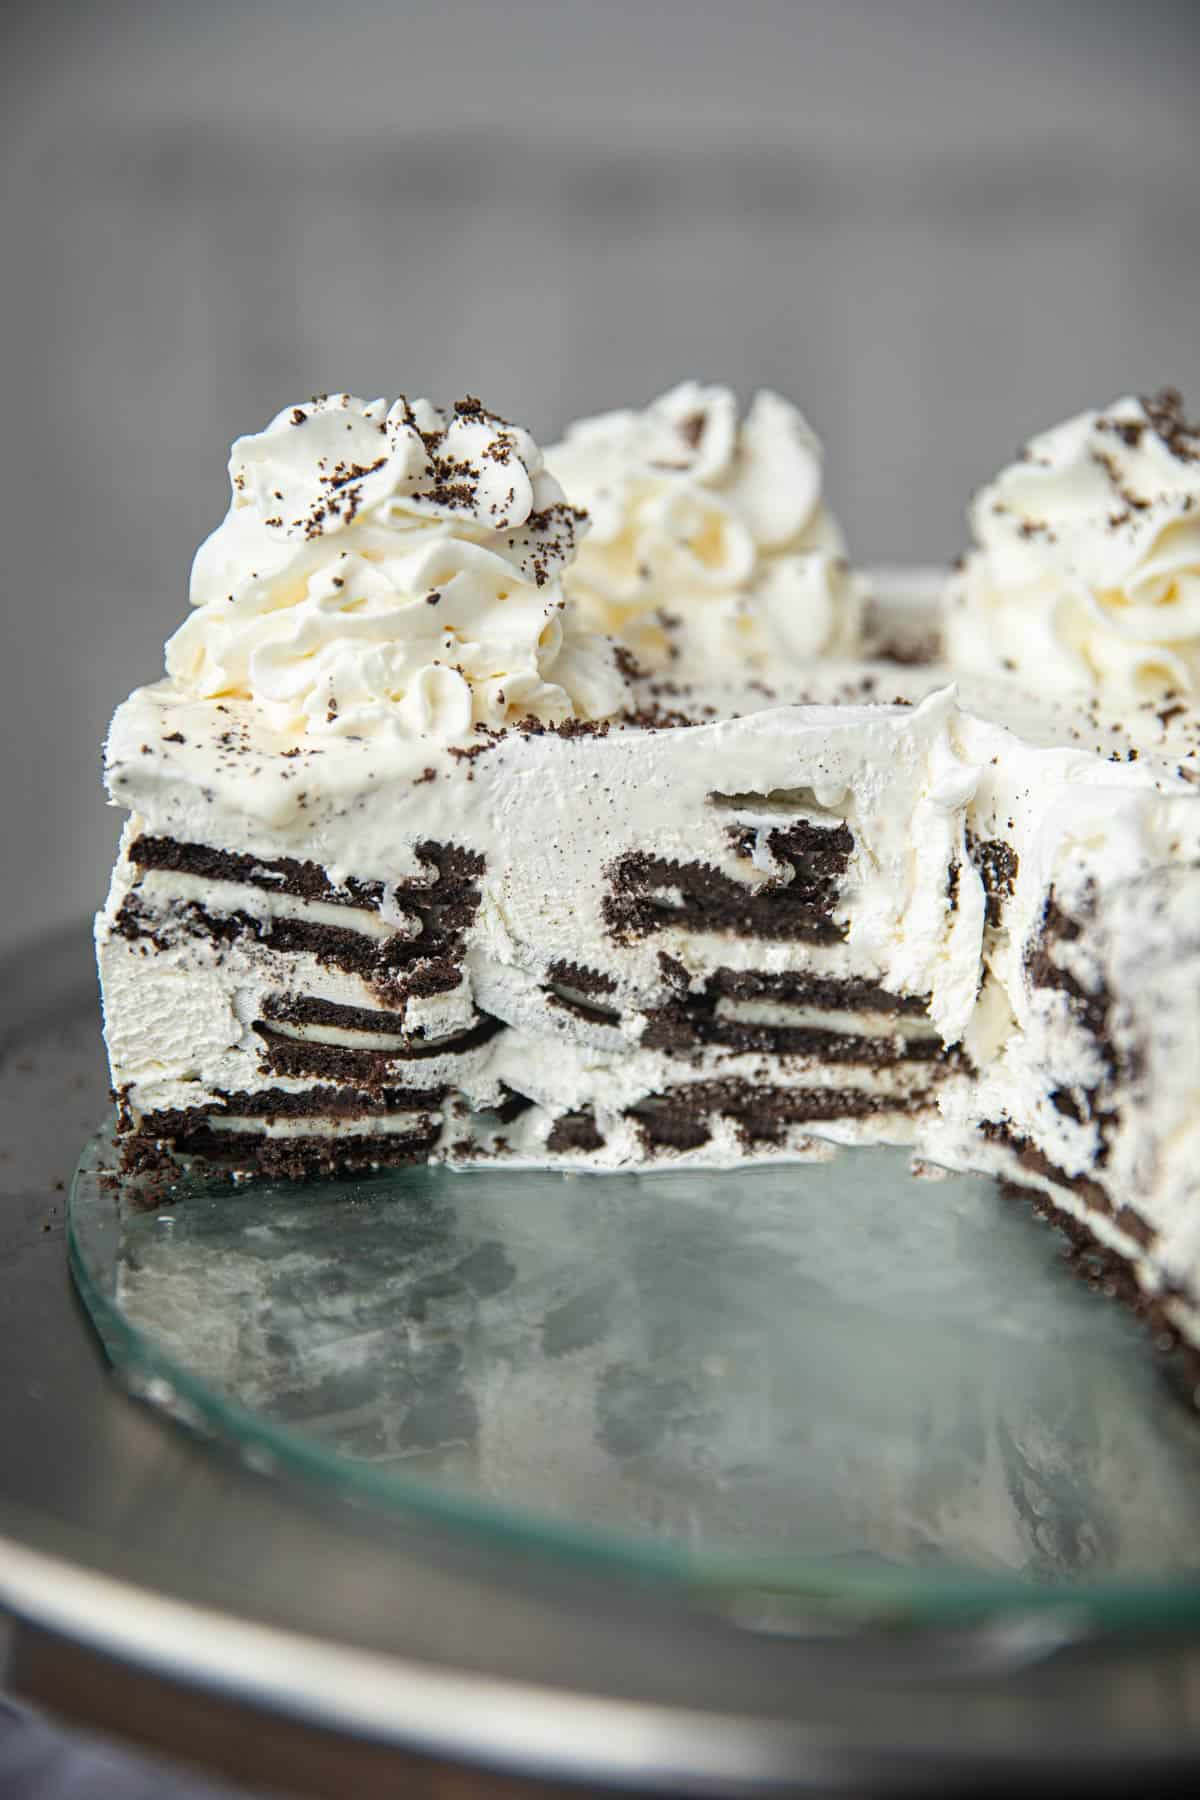 Oreo Ice Box Cake sliced